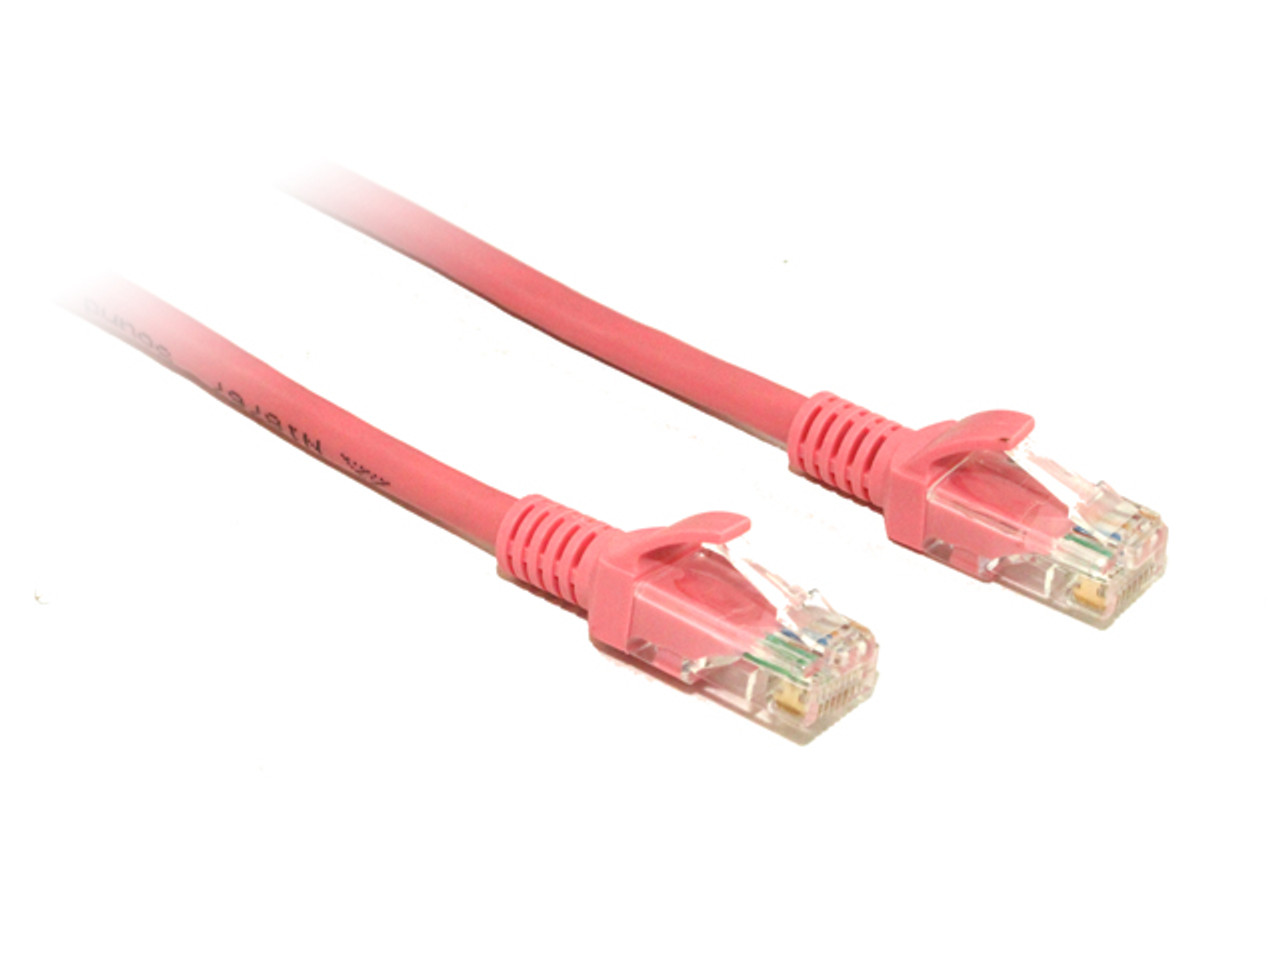 Product image for 1.5M Pink Cat5E Cable | CX Computer Superstore